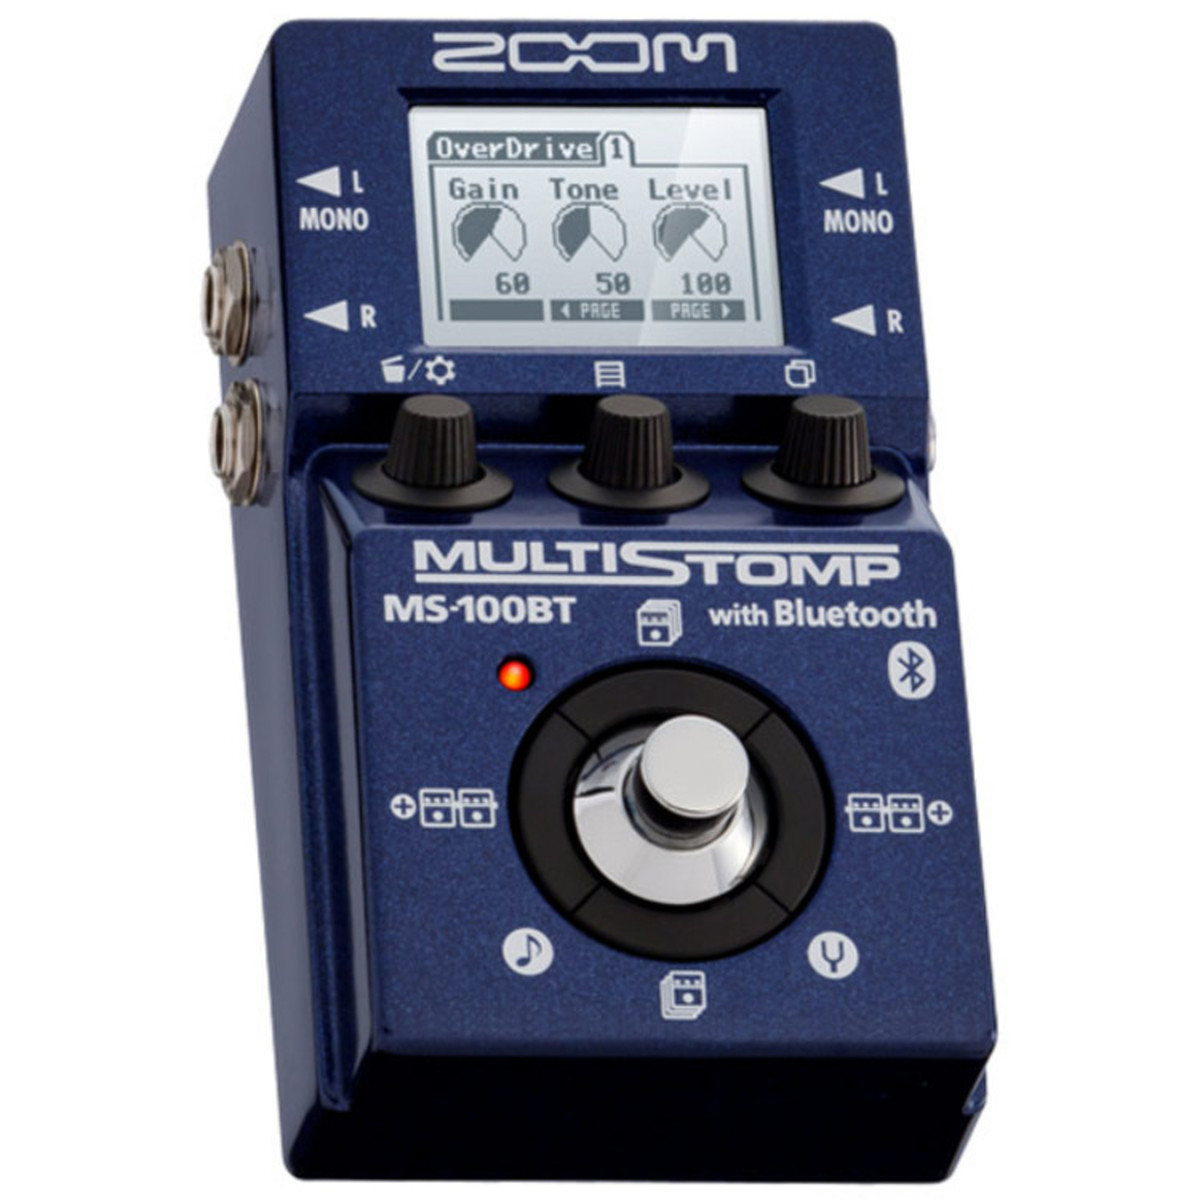 Zoom MS-100BT MultiStomp Drivers for Mac Download